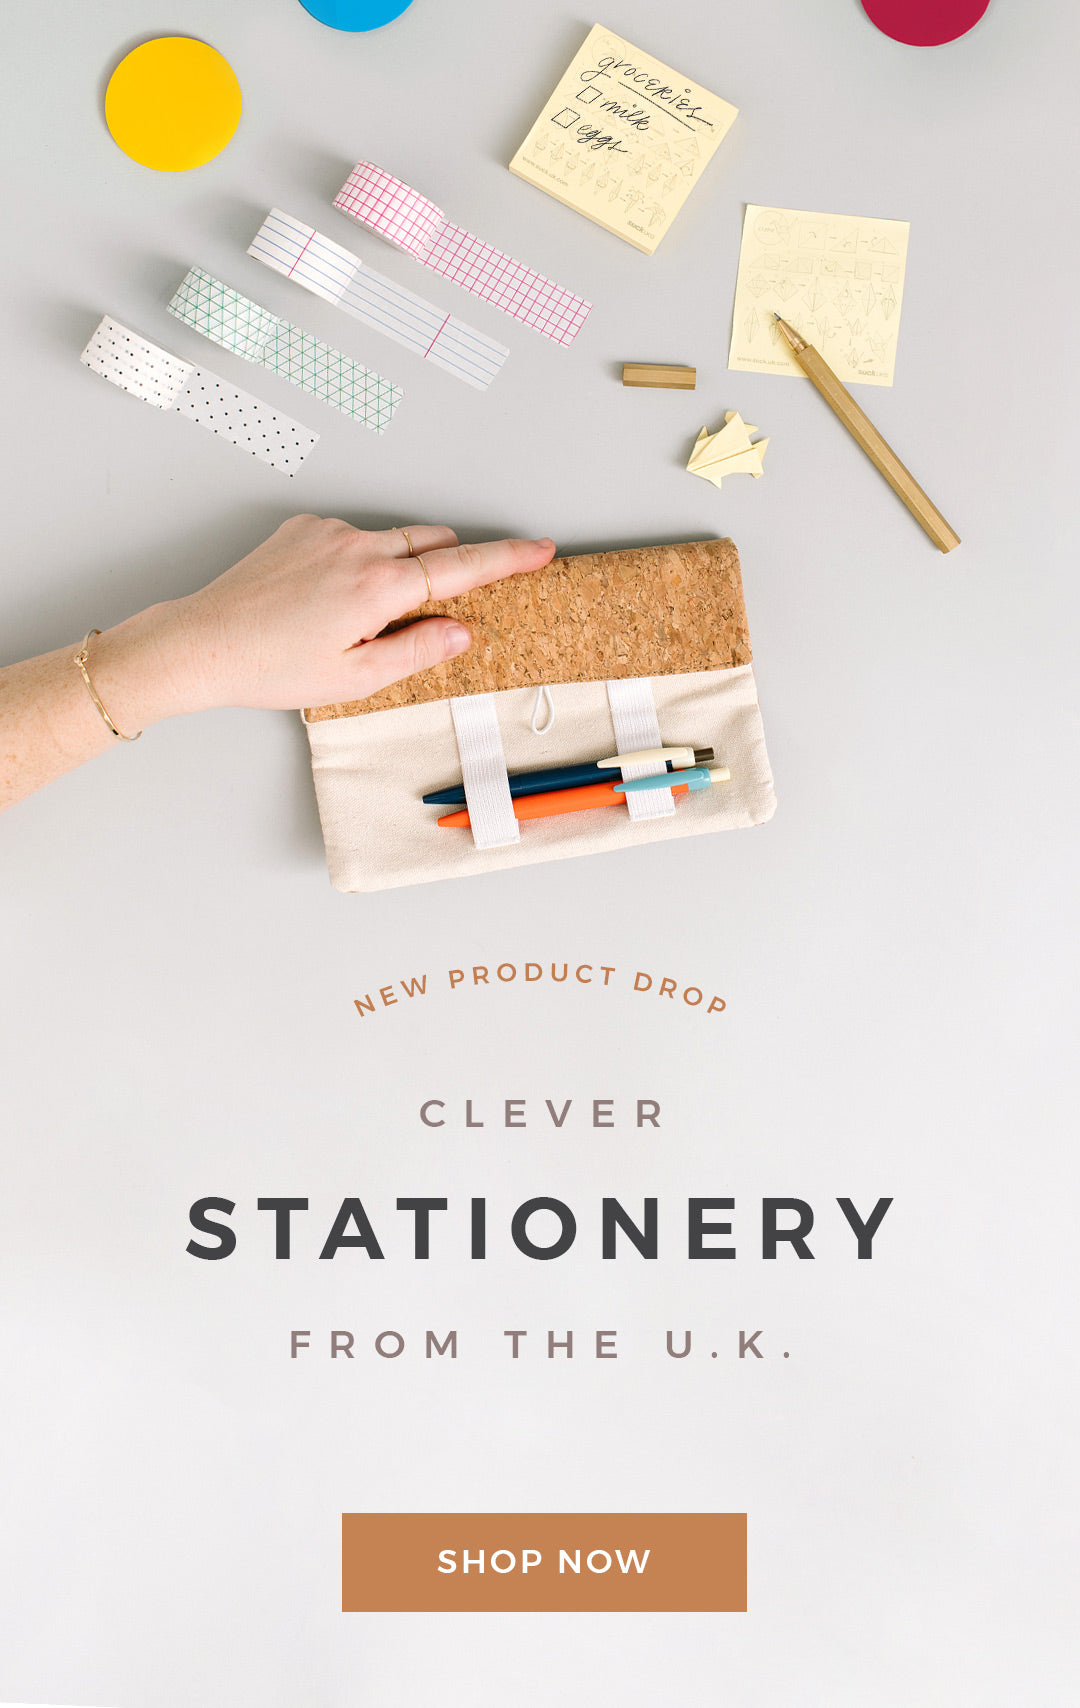 Clever Stationery from the U.K.